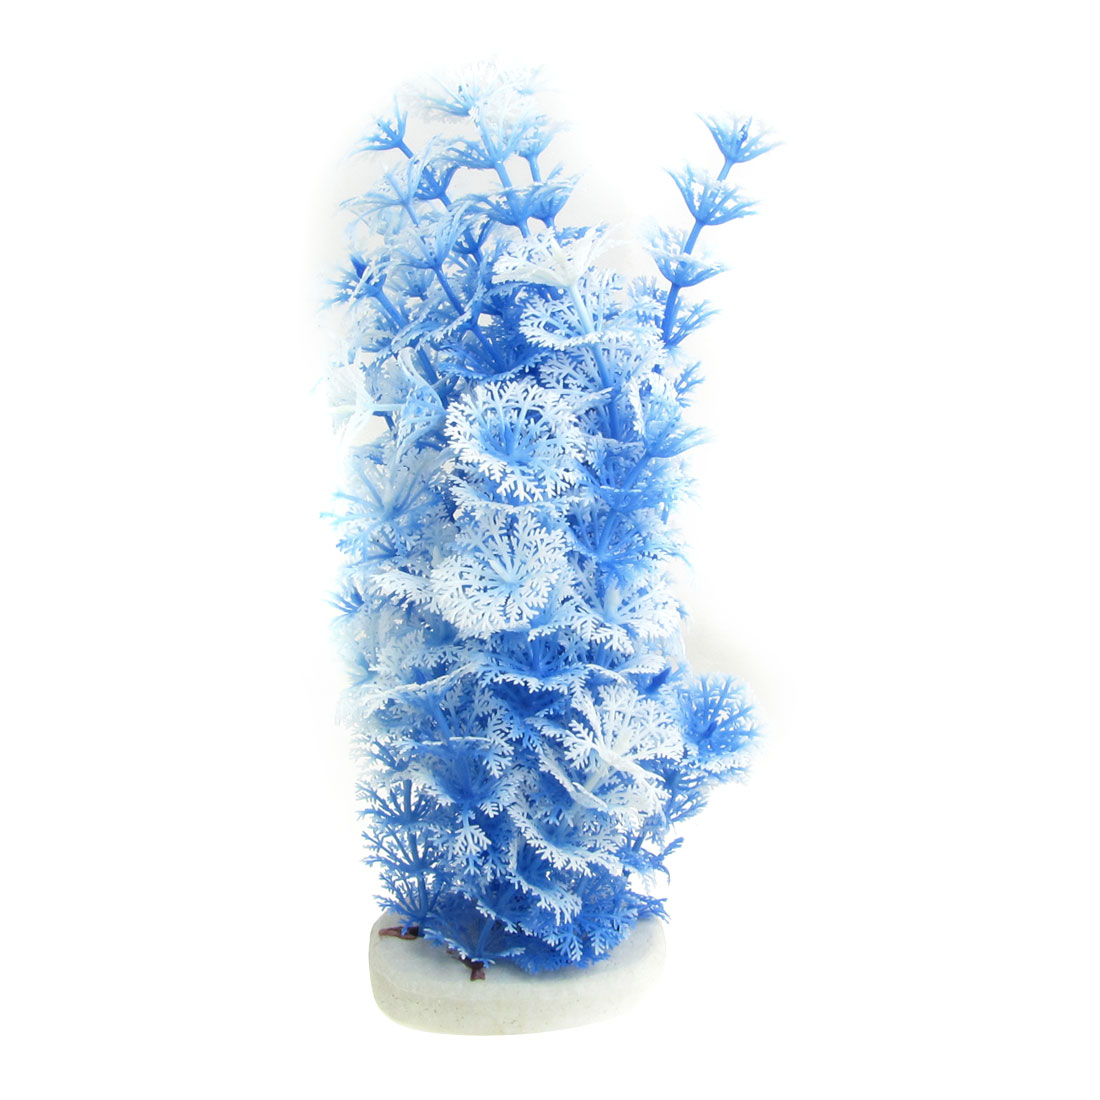 "9.1"" Blue White Emulational Water Grass Ornament for Fish Tank"